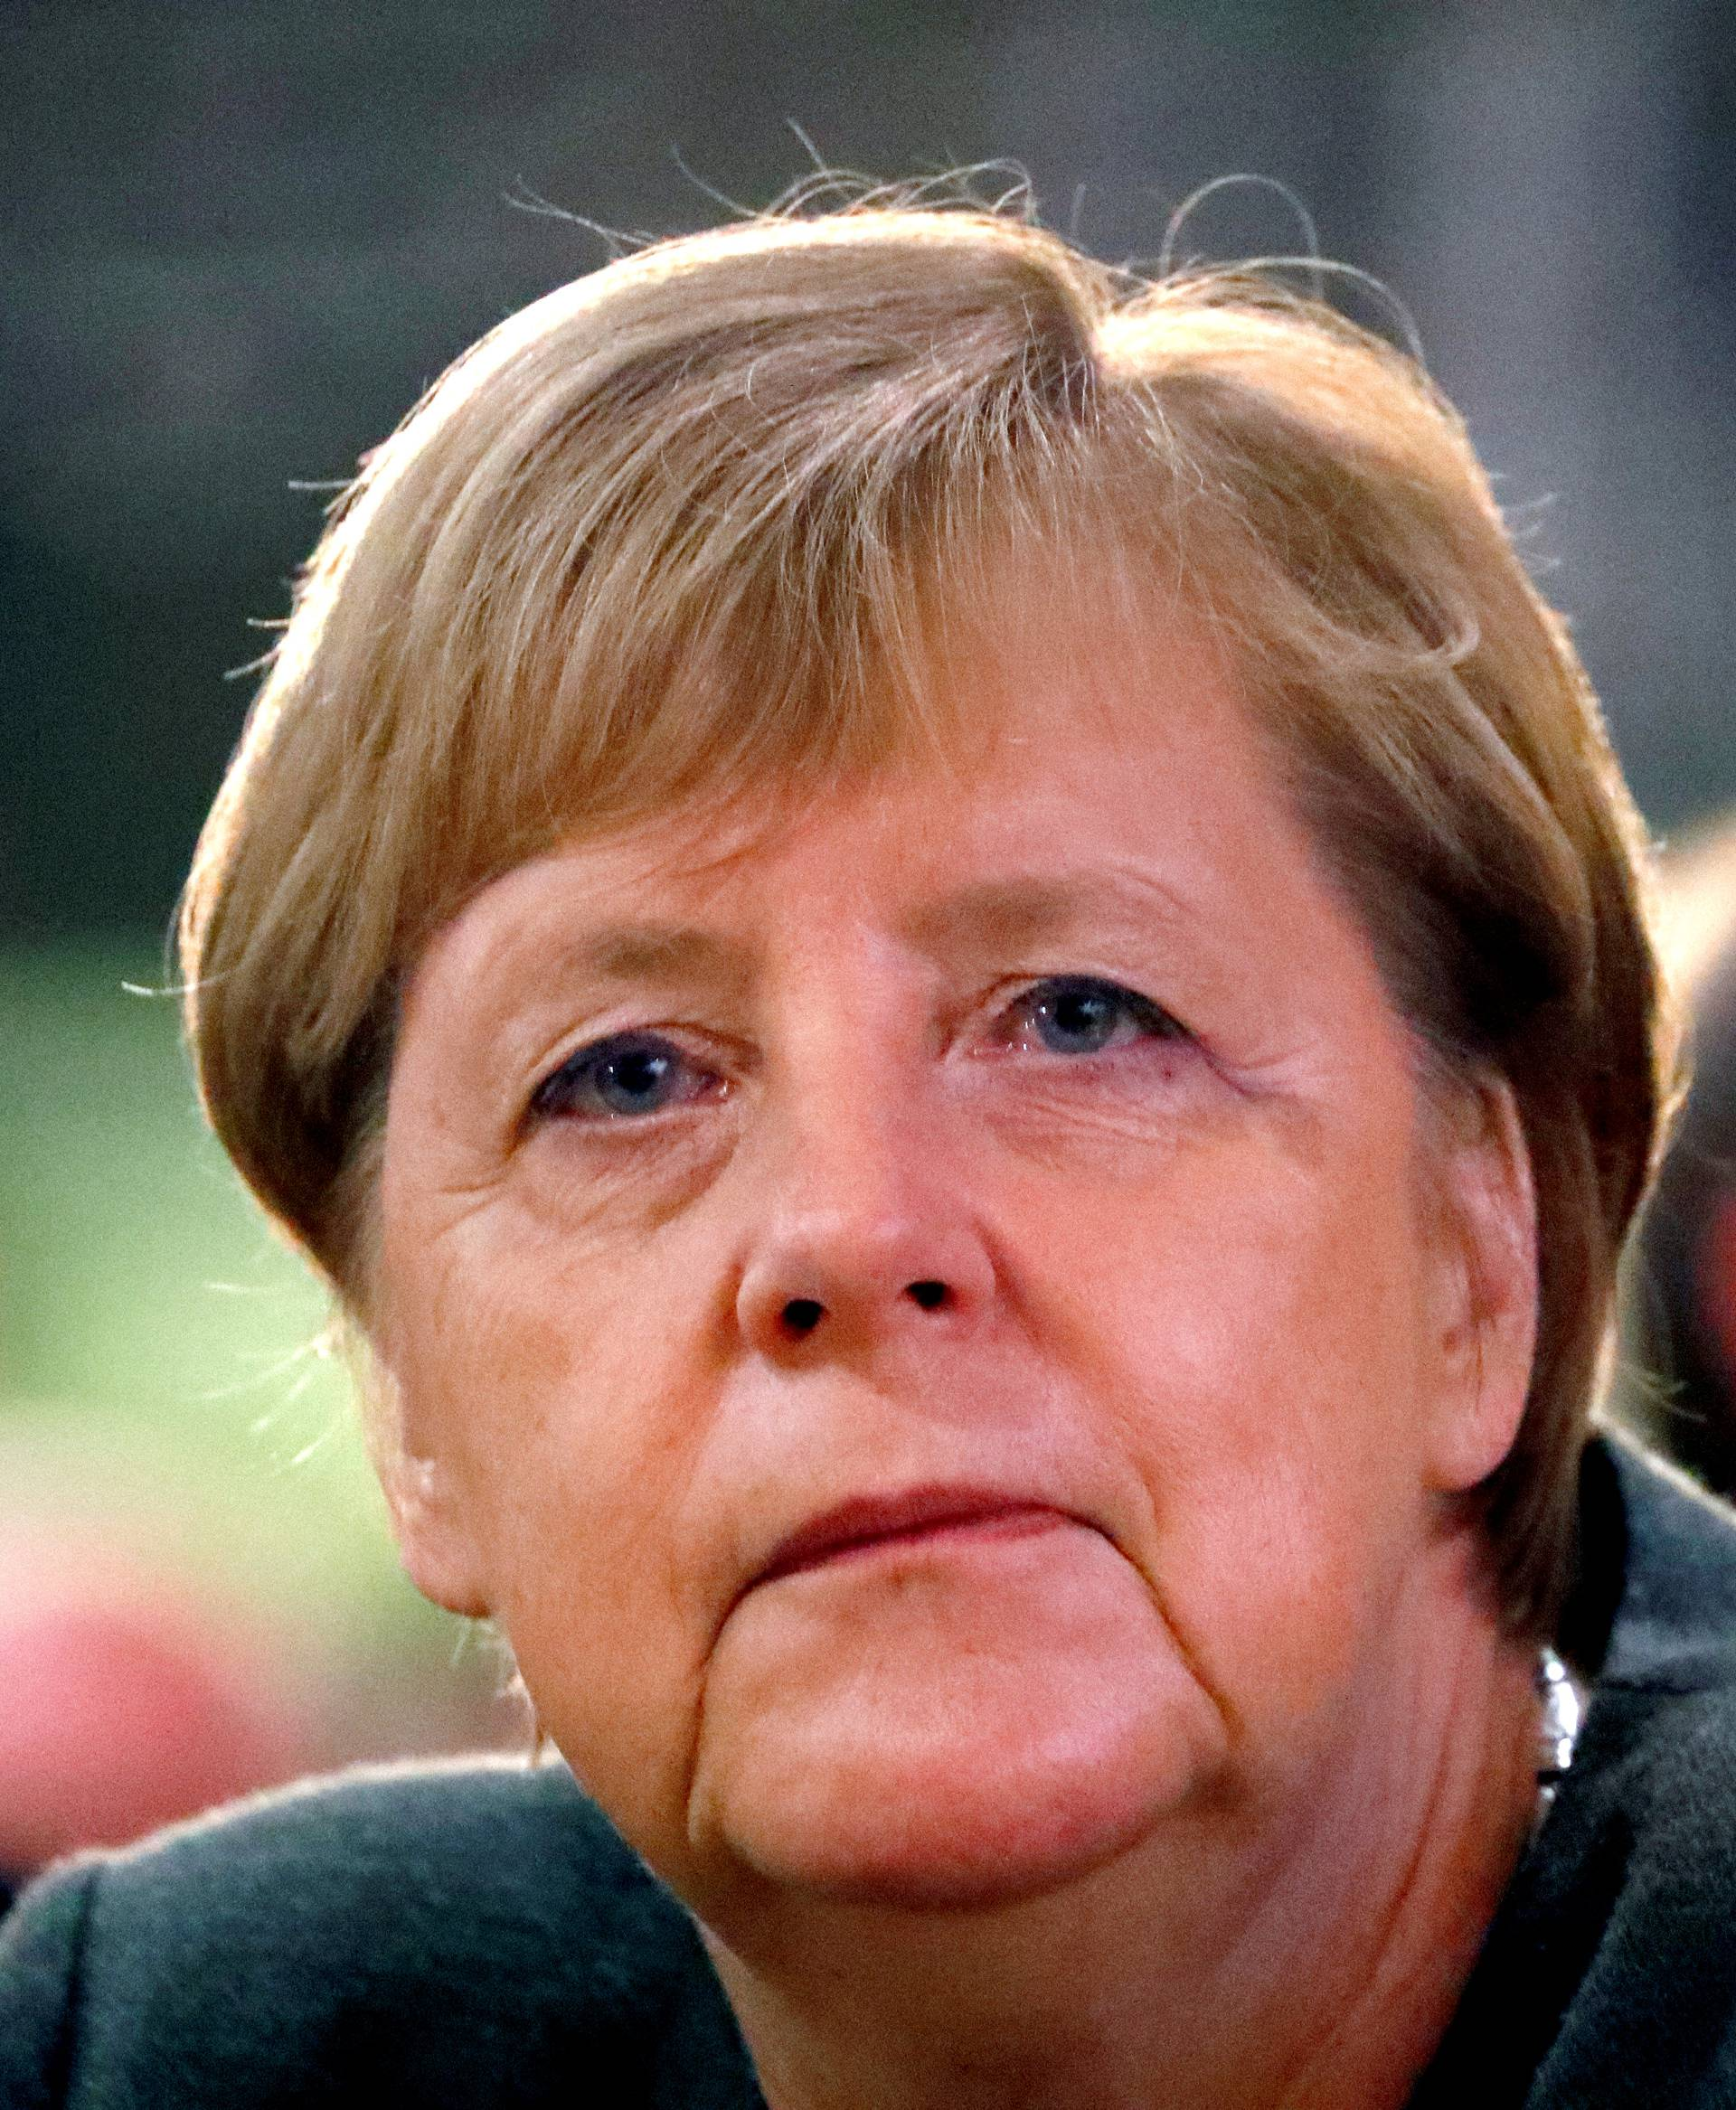 FILE PHOTO: German Chancellor Angela Merkel listens to Hesse State Prime Minister Volker Bouffier's speech during his election campaign rally in Ortenberg